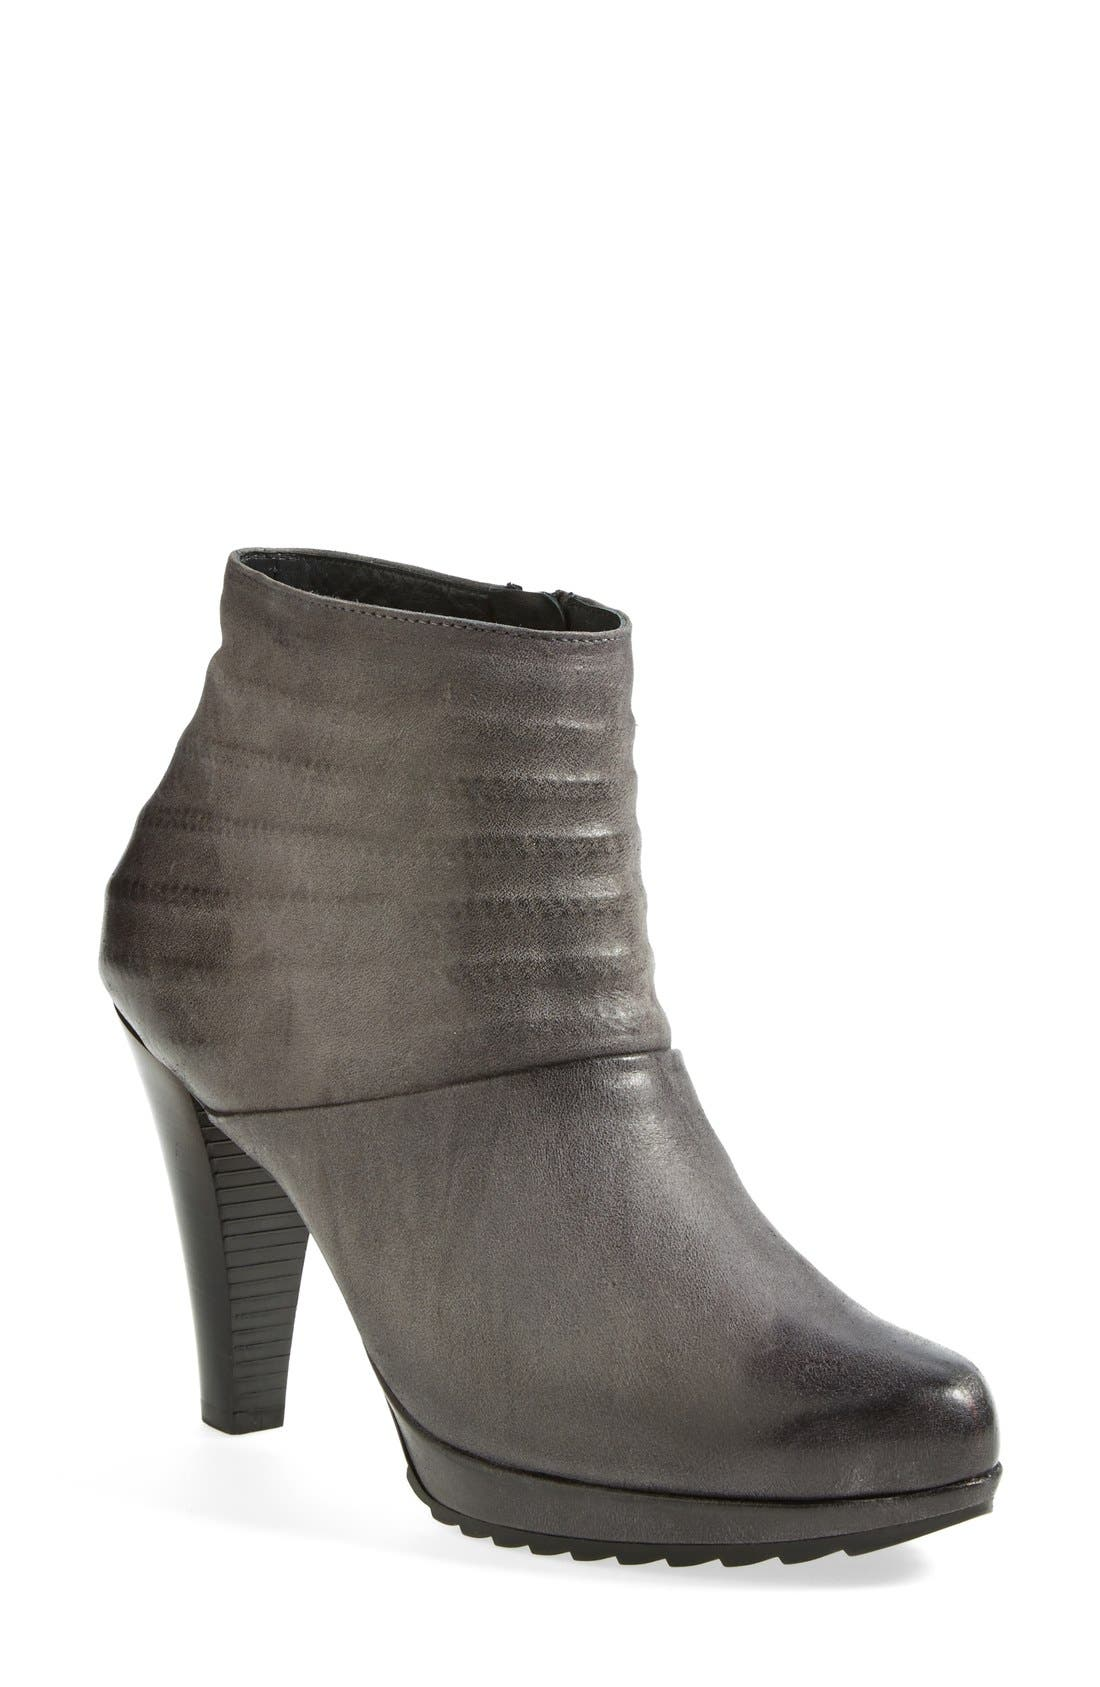 Main Image - Paul Green 'Belmont' Leather Bootie (Women)